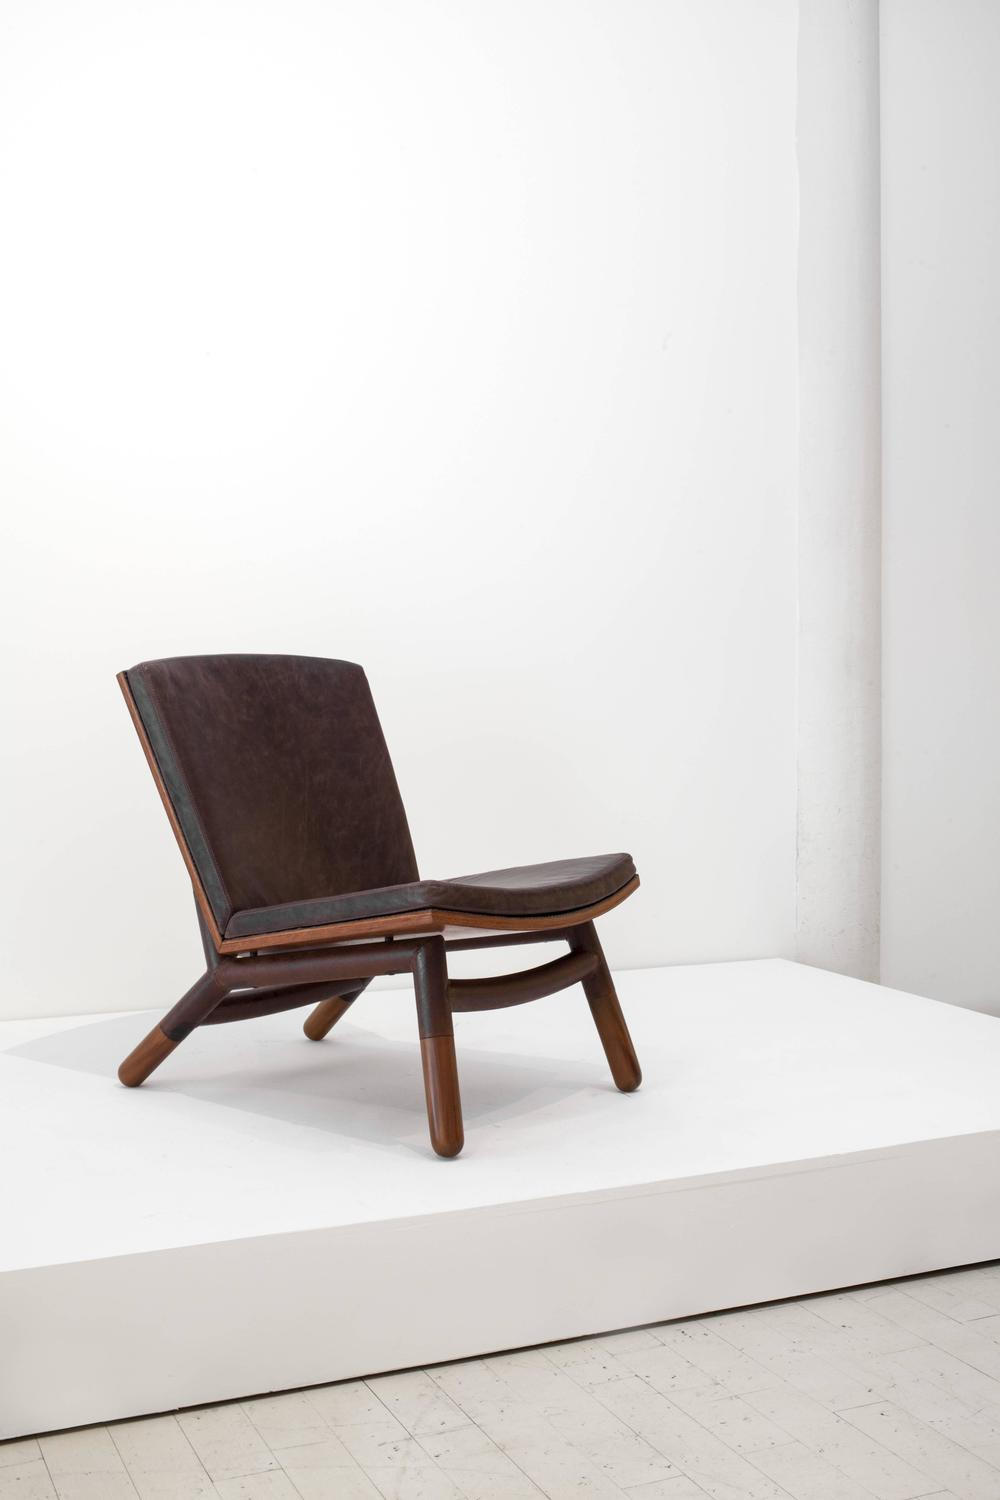 Java chair by carlos motta for sale at 1stdibs for Carlos motta designer